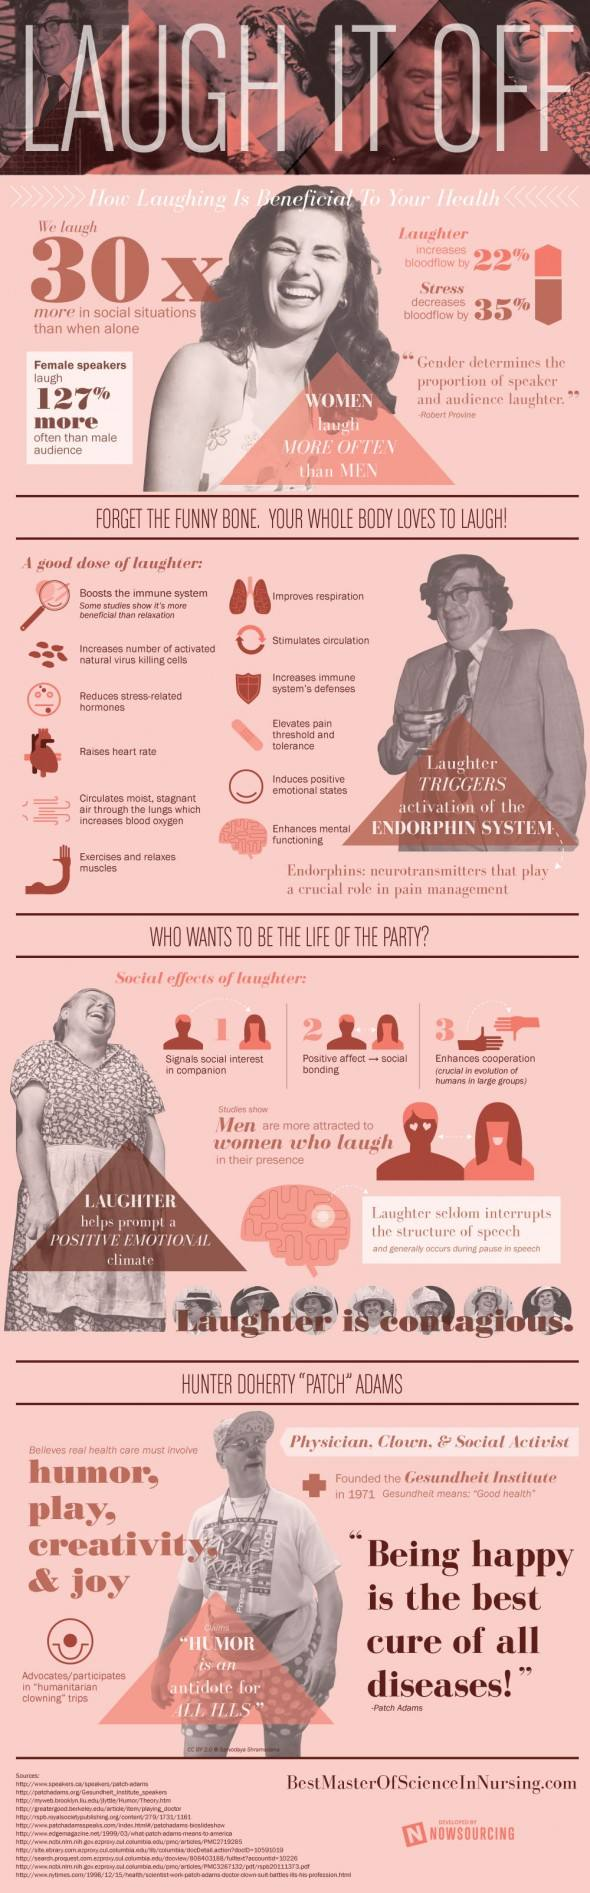 how-laughing-is-beneficial-to-your-health-infographic